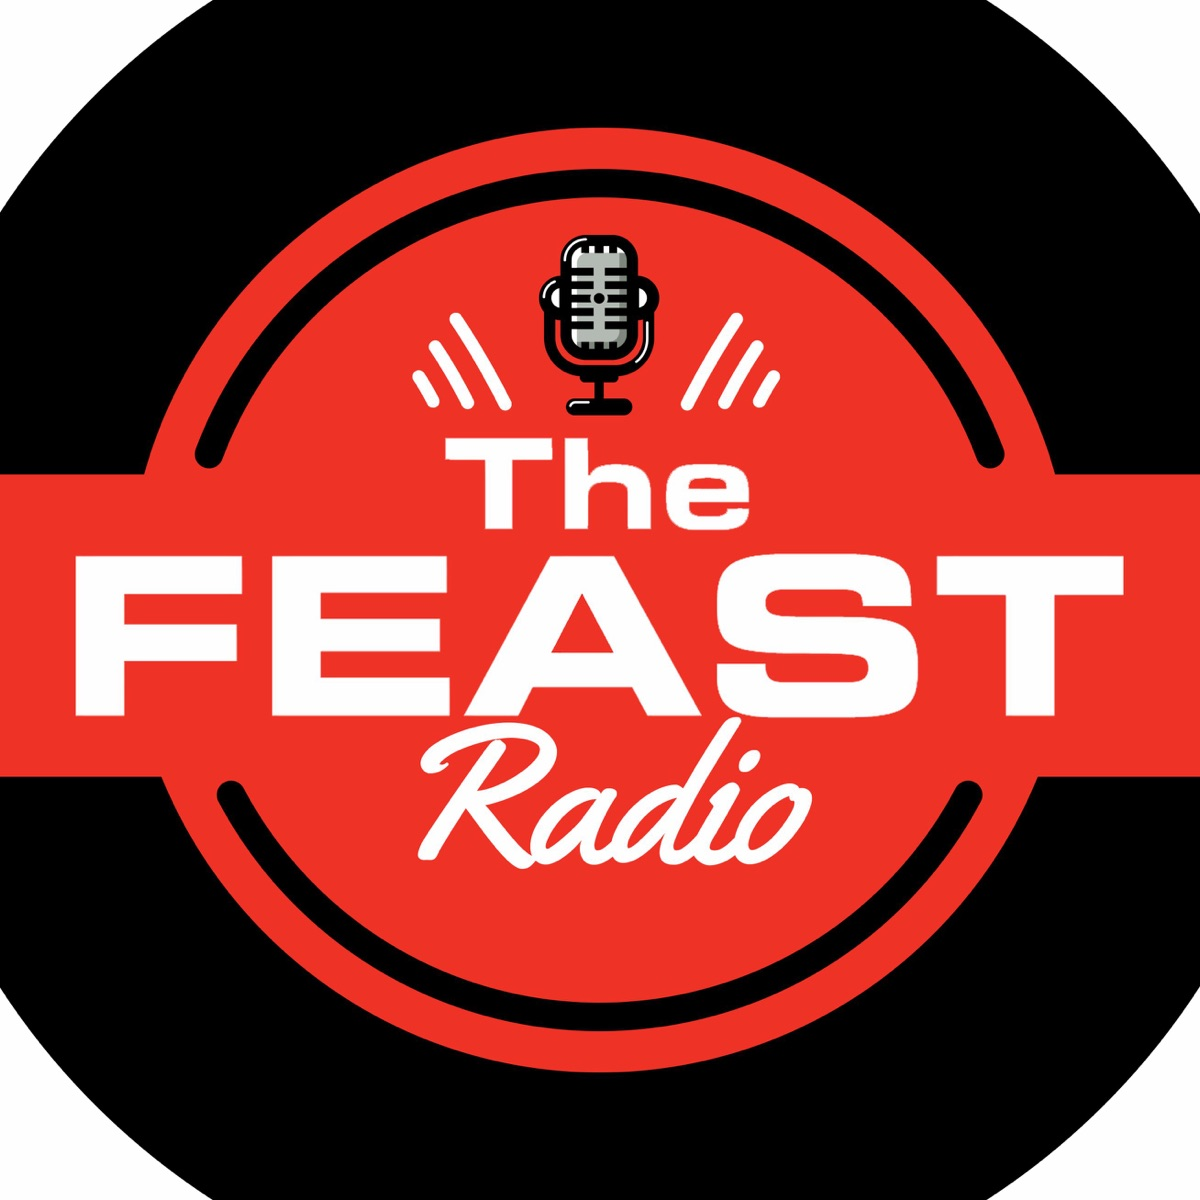 The Feast Radio